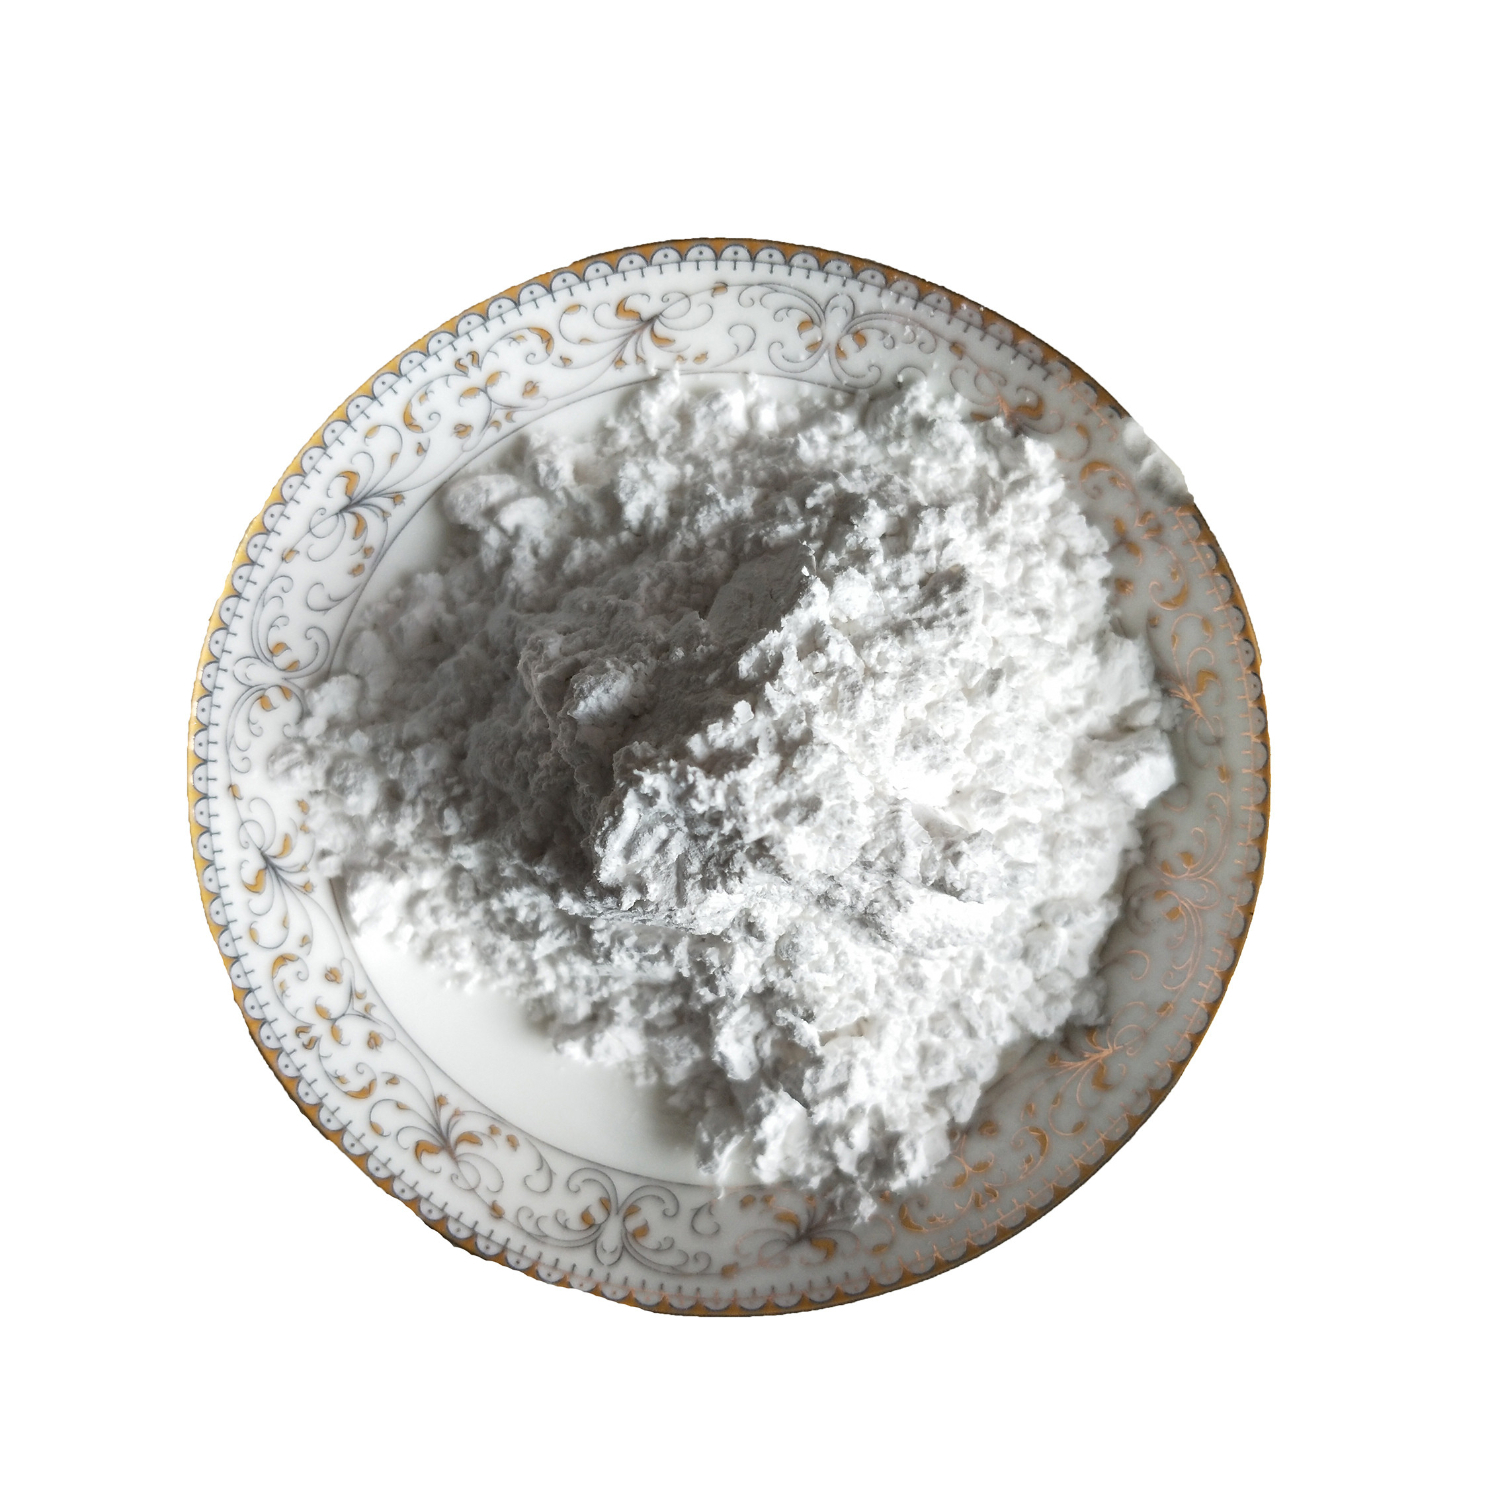 La2O3  Lanthanum Oxide High Purity Powder 99.9% For R&D Ultrafine Nano Powders About 1 Micro Meter 50/100Gram